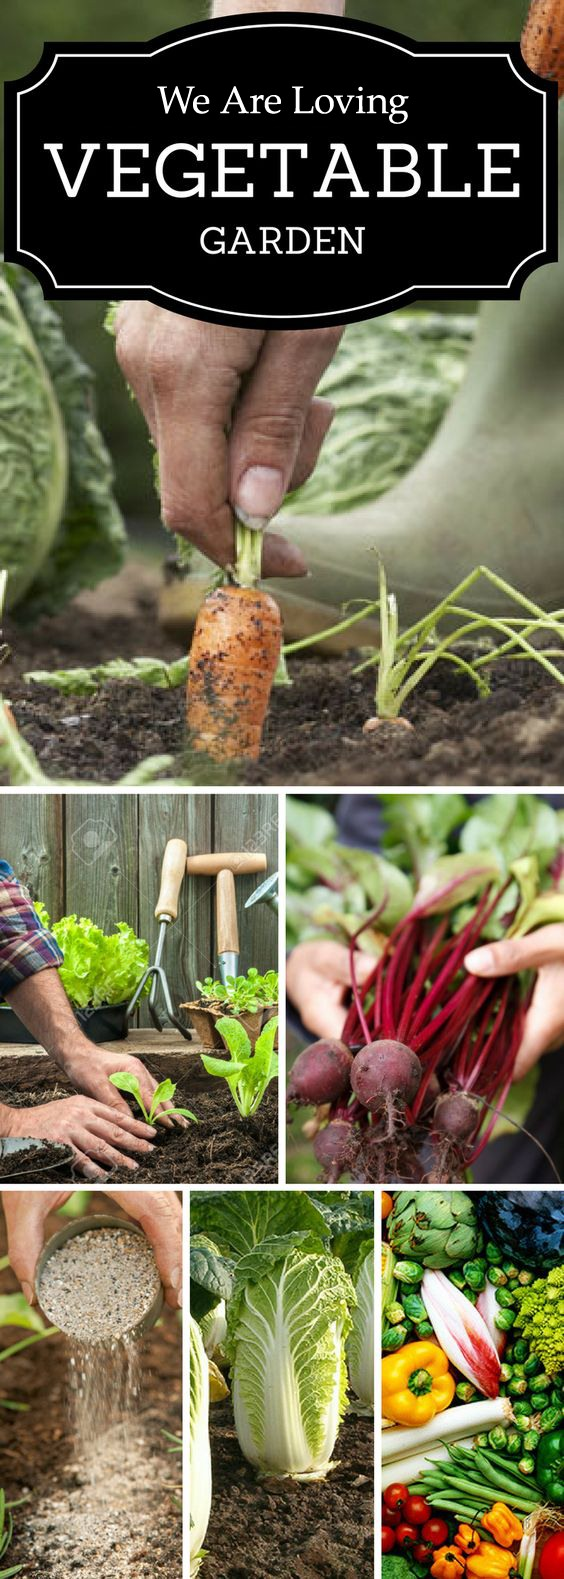 We Are Loving Vegetable Gardening, Let's Start Planting Your First Garden